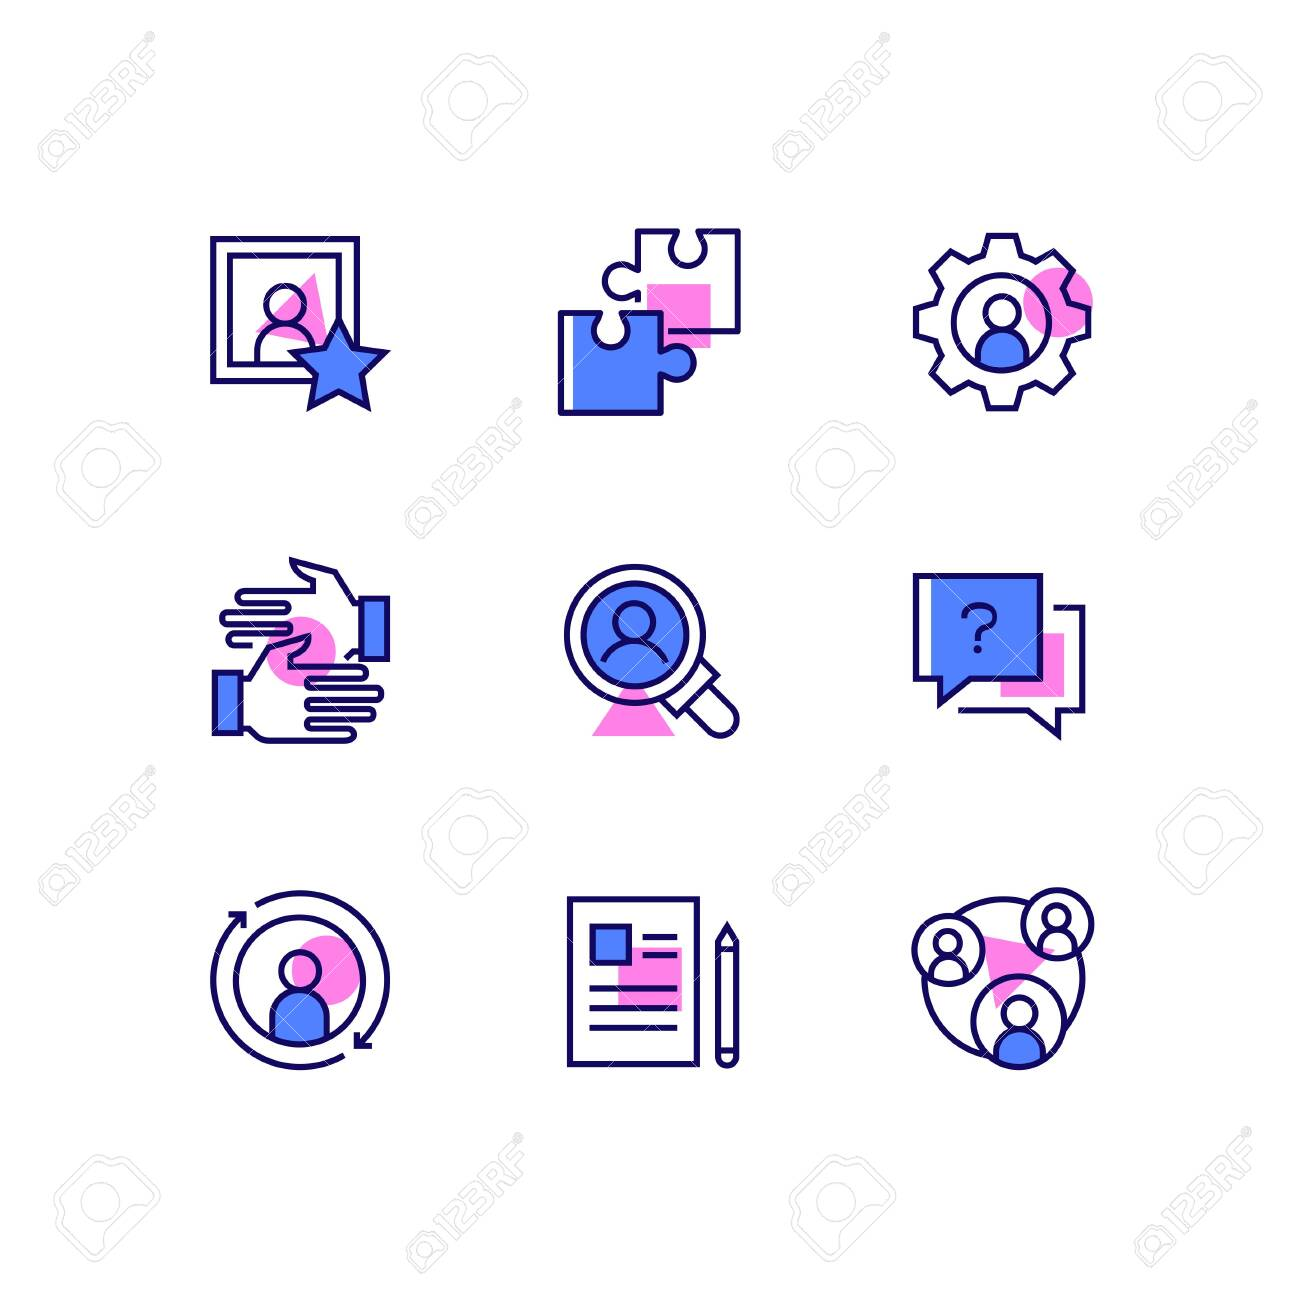 Business and management - line design style icons set. Images of puzzle pieces, gear, handshake, magnifying glass, question mark, refresh symbol, paper and pen, team. Human resources concept - 128175906